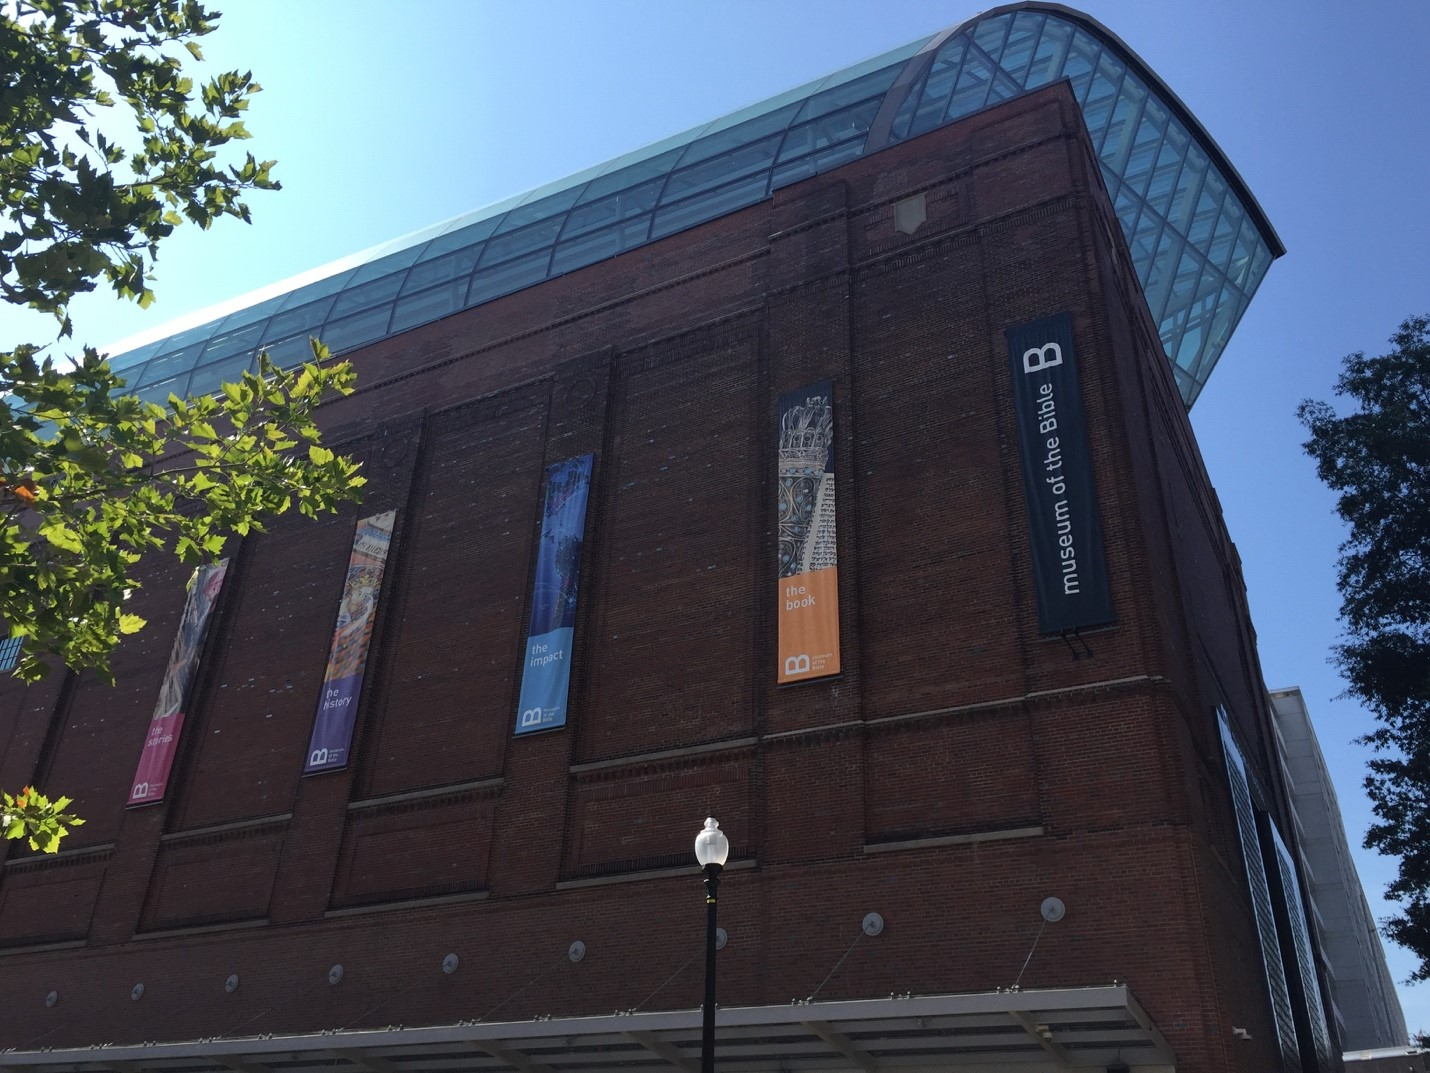 The Museum of the Bible at 400 4th Street SW in Washington, DC  Photo Credit: Michaela Kizershot White